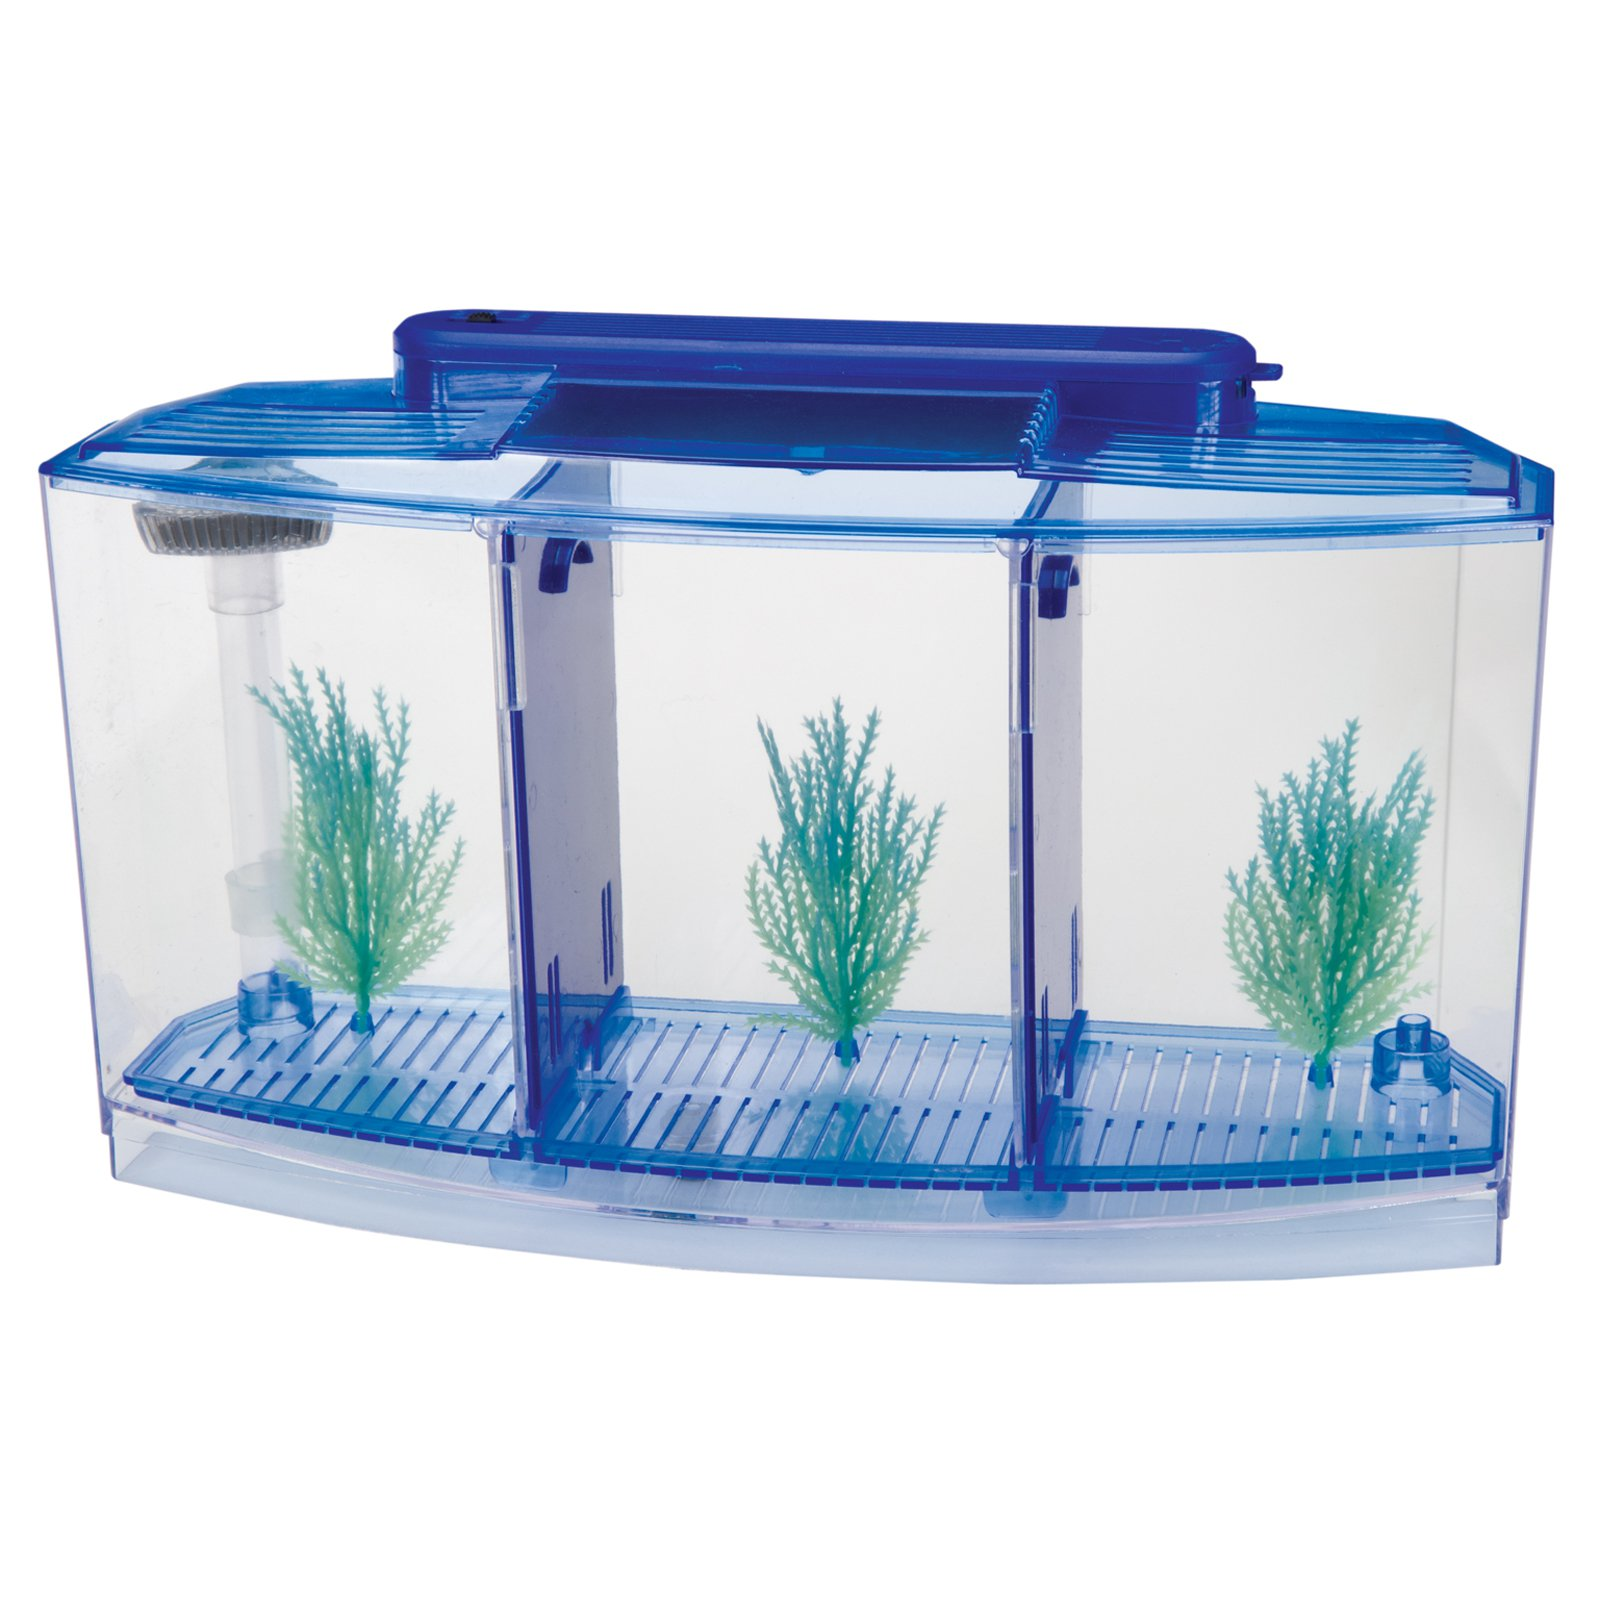 Aquarium for betta fish 1000 aquarium ideas for Betta fish tanks petsmart